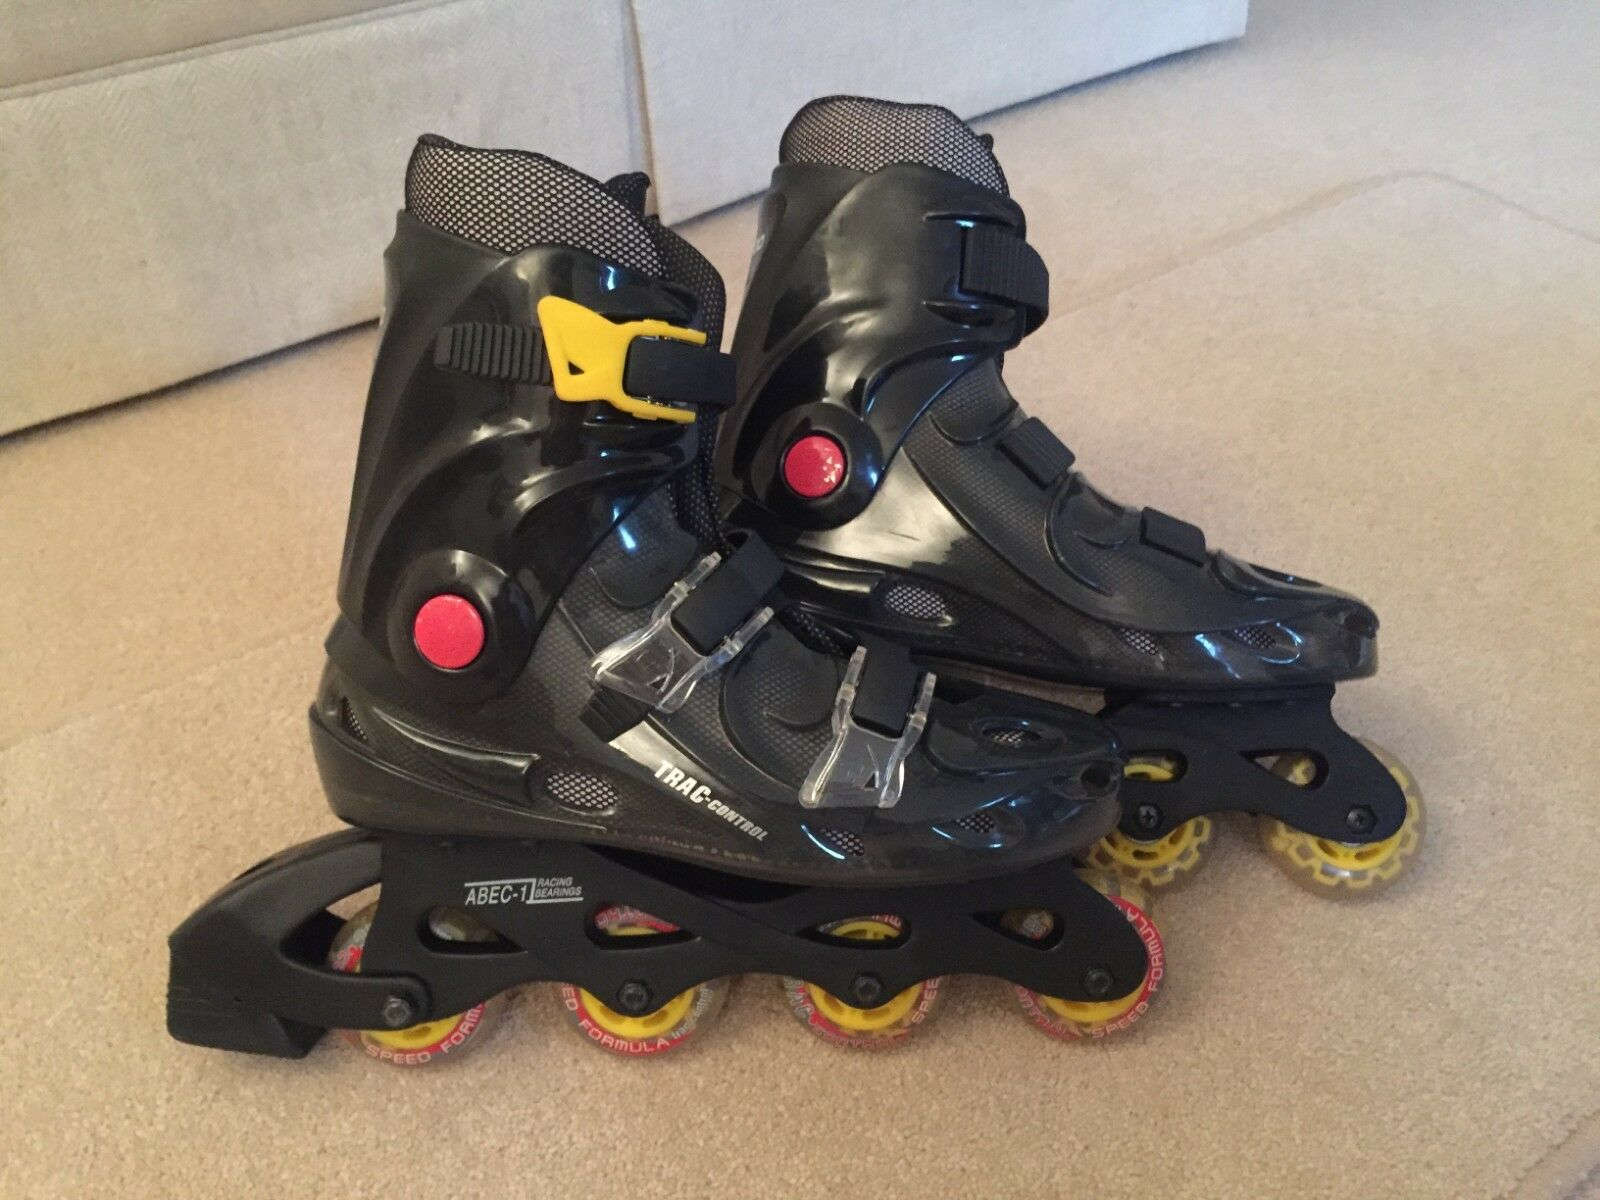 Superb Condition-UK Size 4 CAS (California Advance Sports) Rollerblades STS 5000